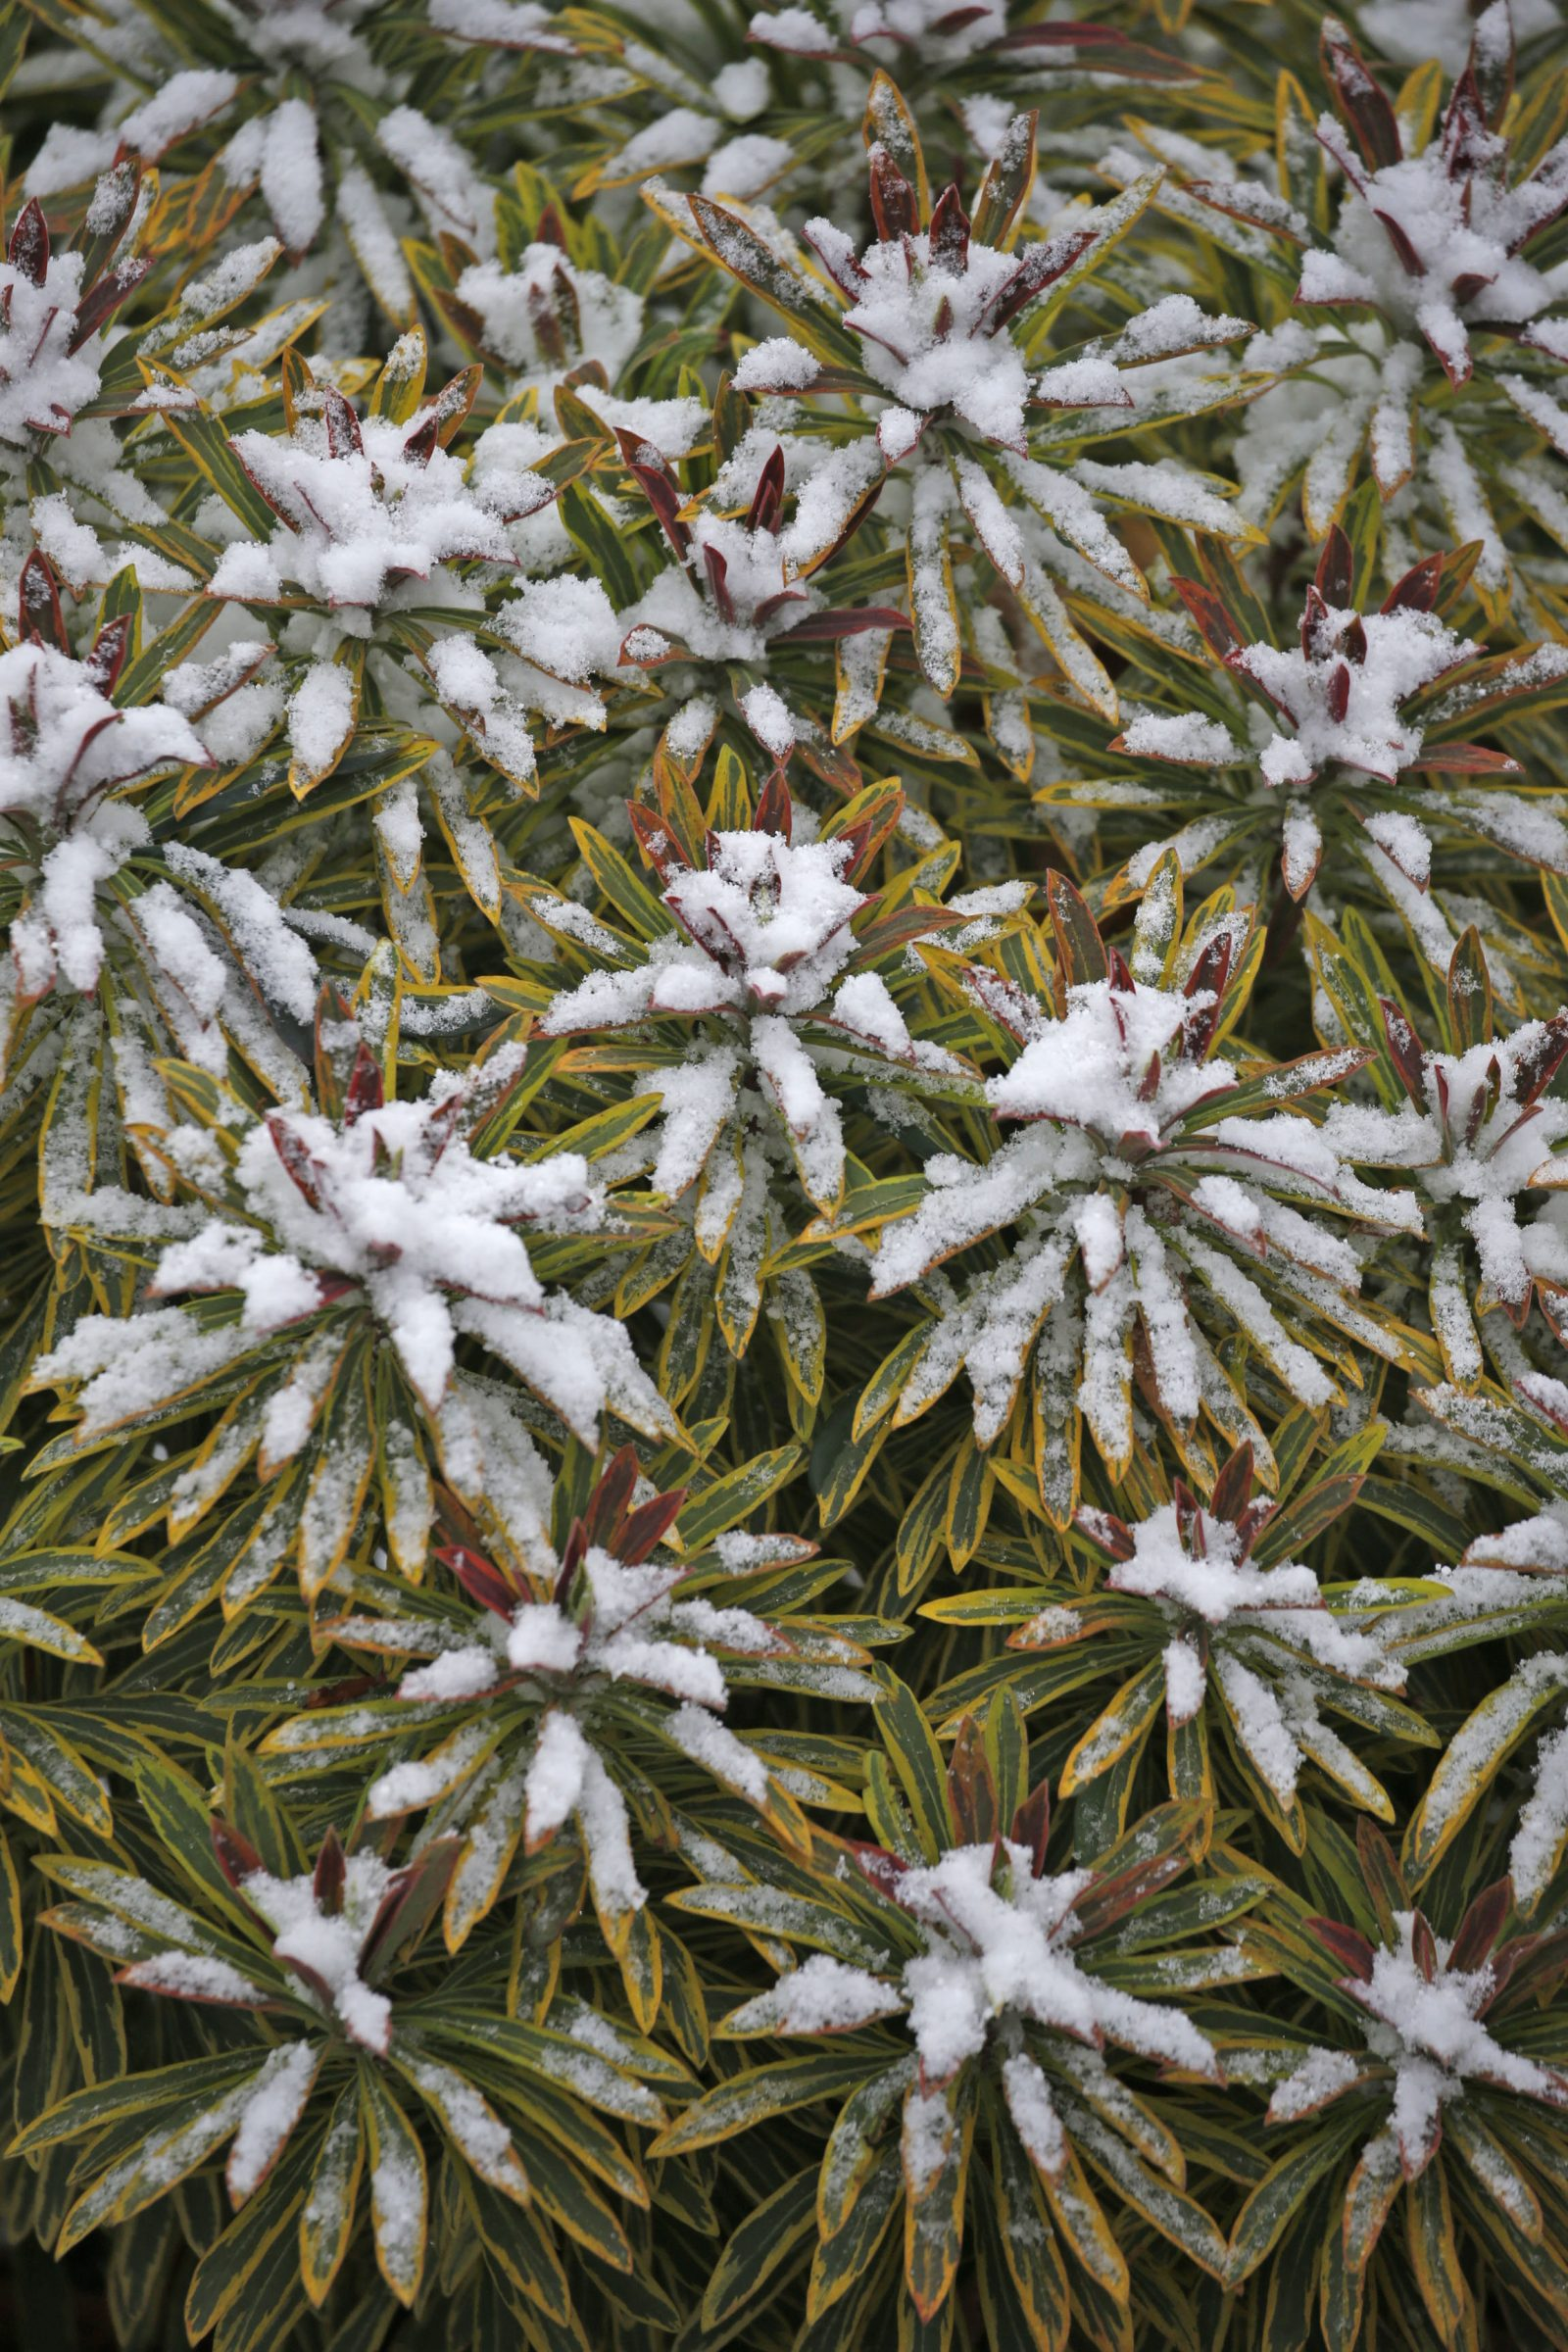 People around Western New York regions awoke to various amounts of snow Nov. 20. Here, snow dotted plants at Knox Farm State Park in East Aurora. (Robert Kirkham/Buffalo News)